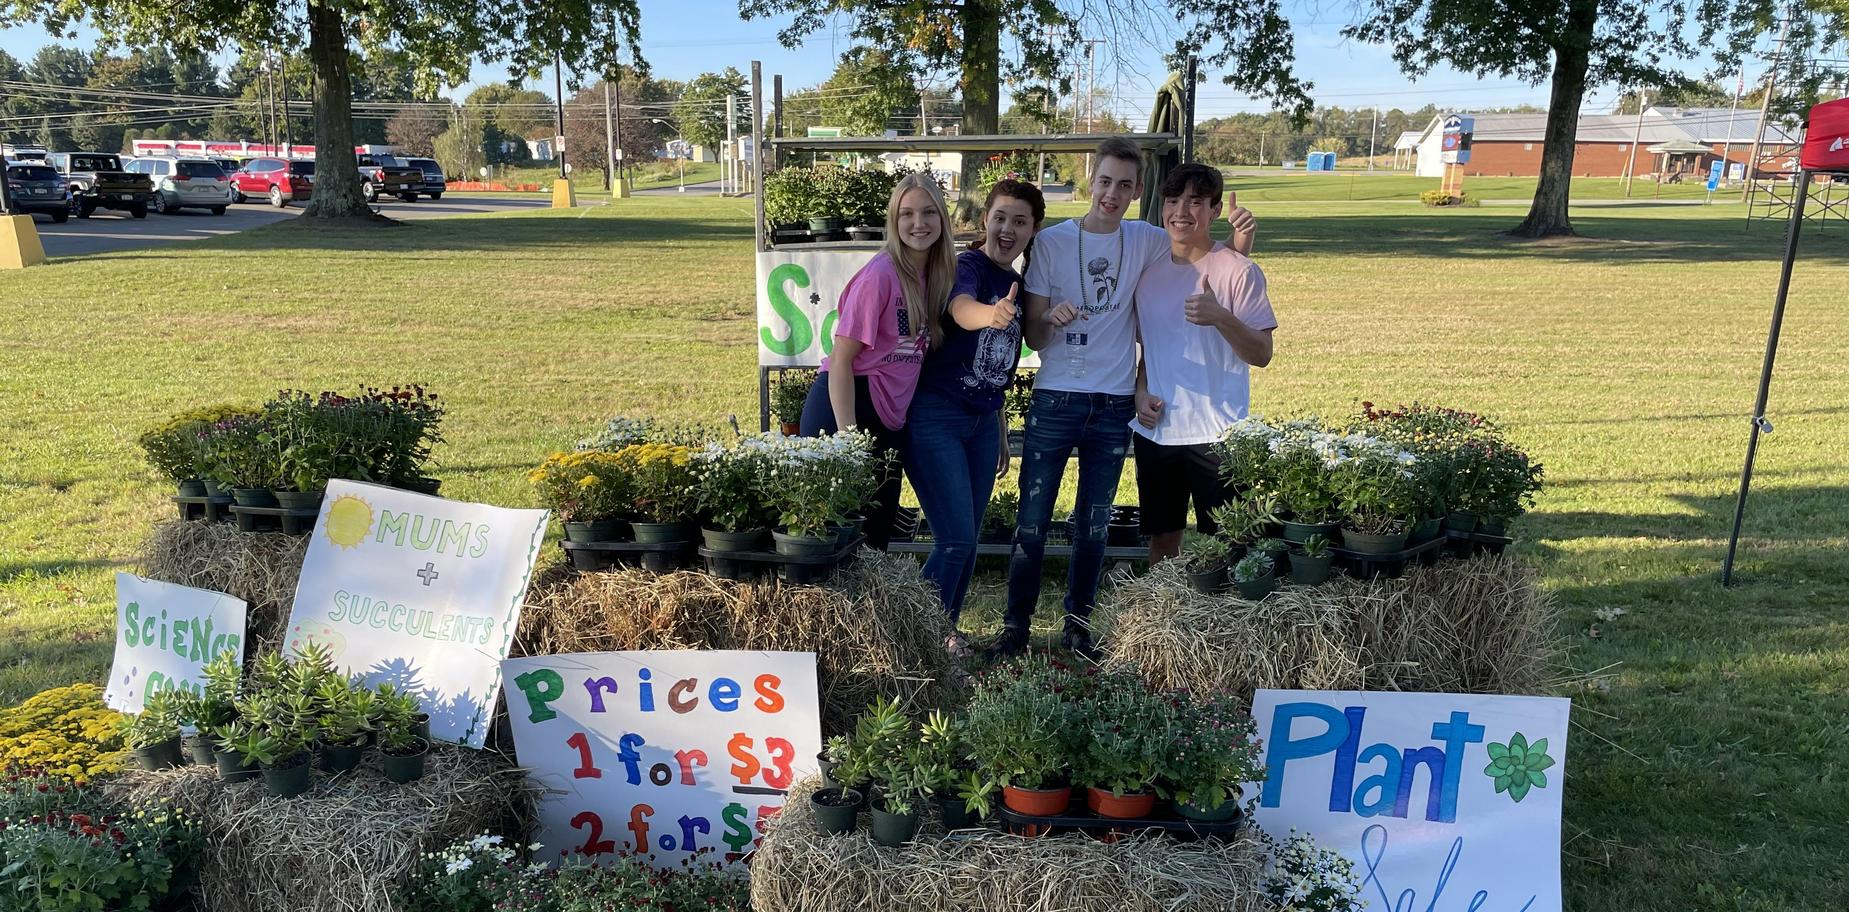 Science Club booth at Homecoming